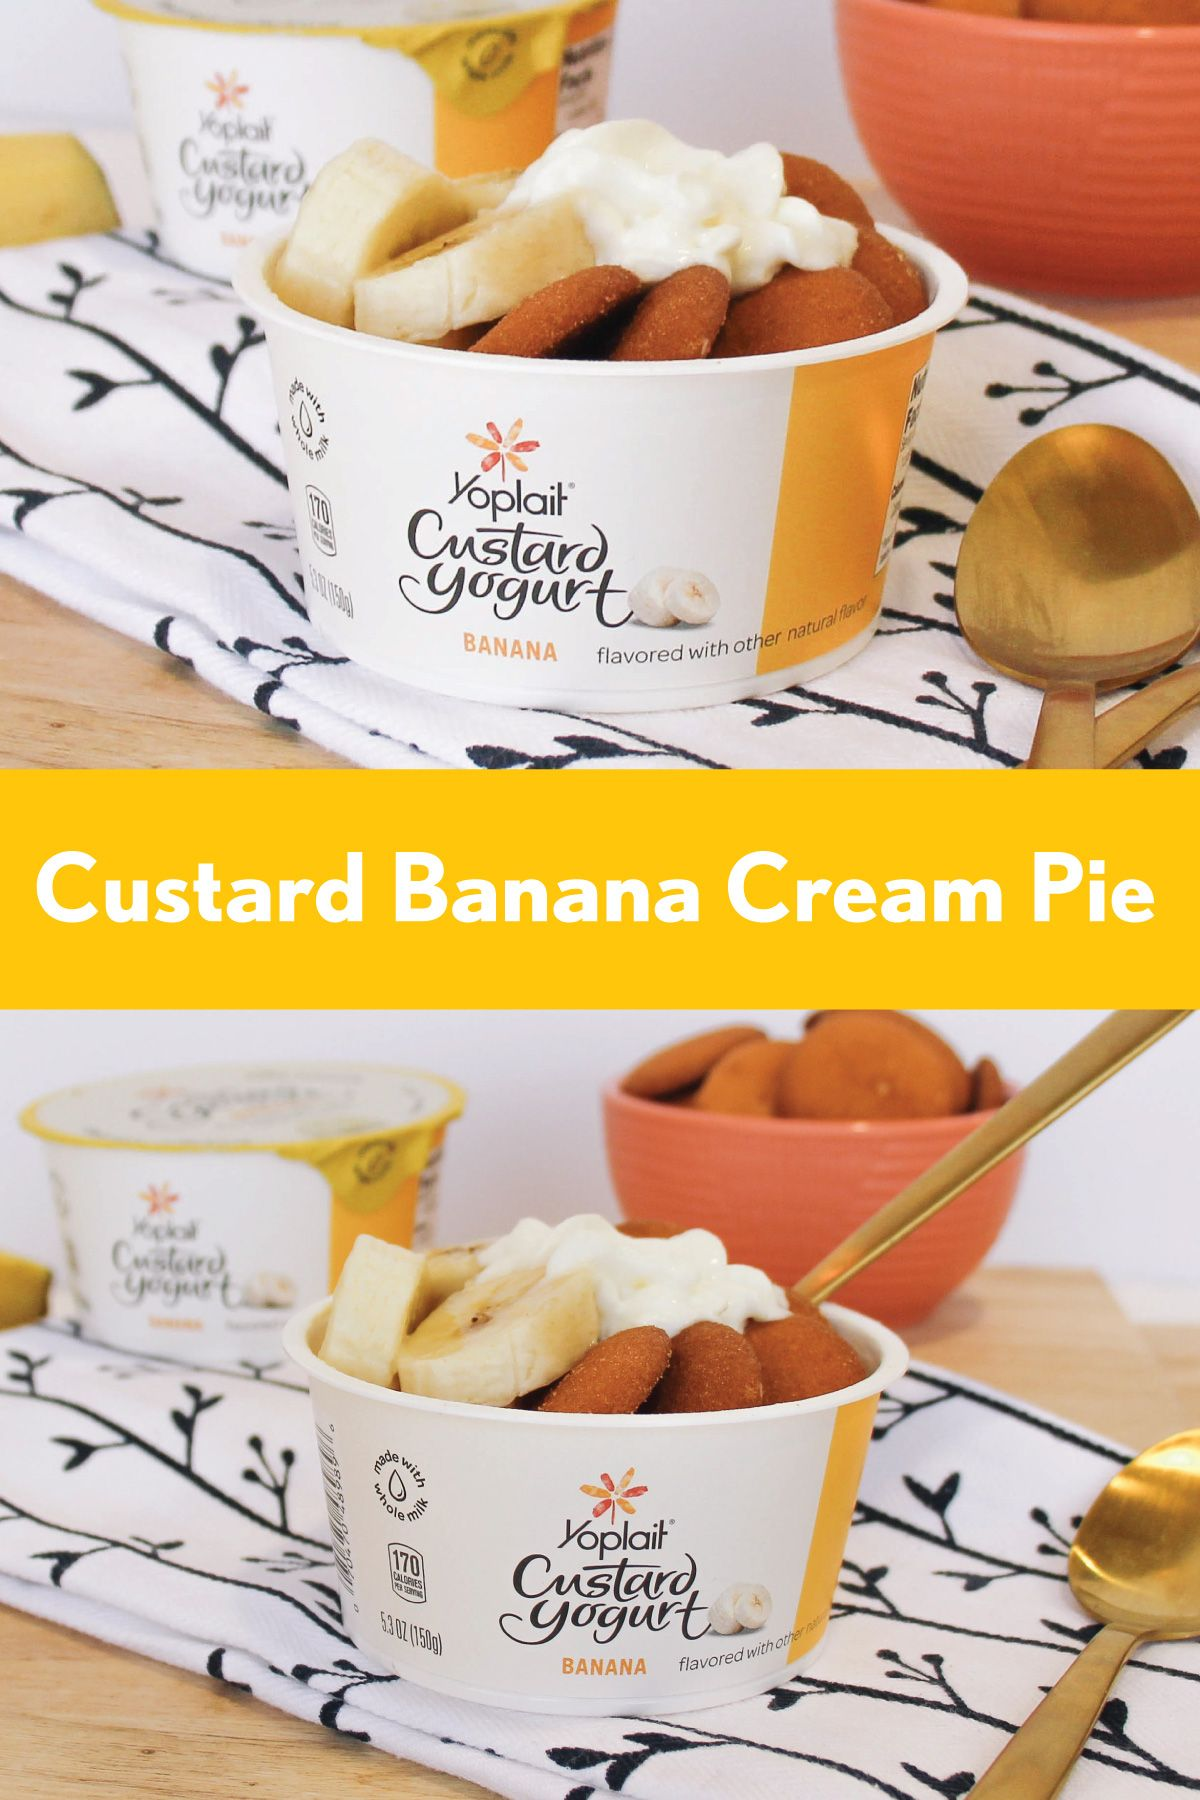 Banana Cream Pies are delicious and even better when